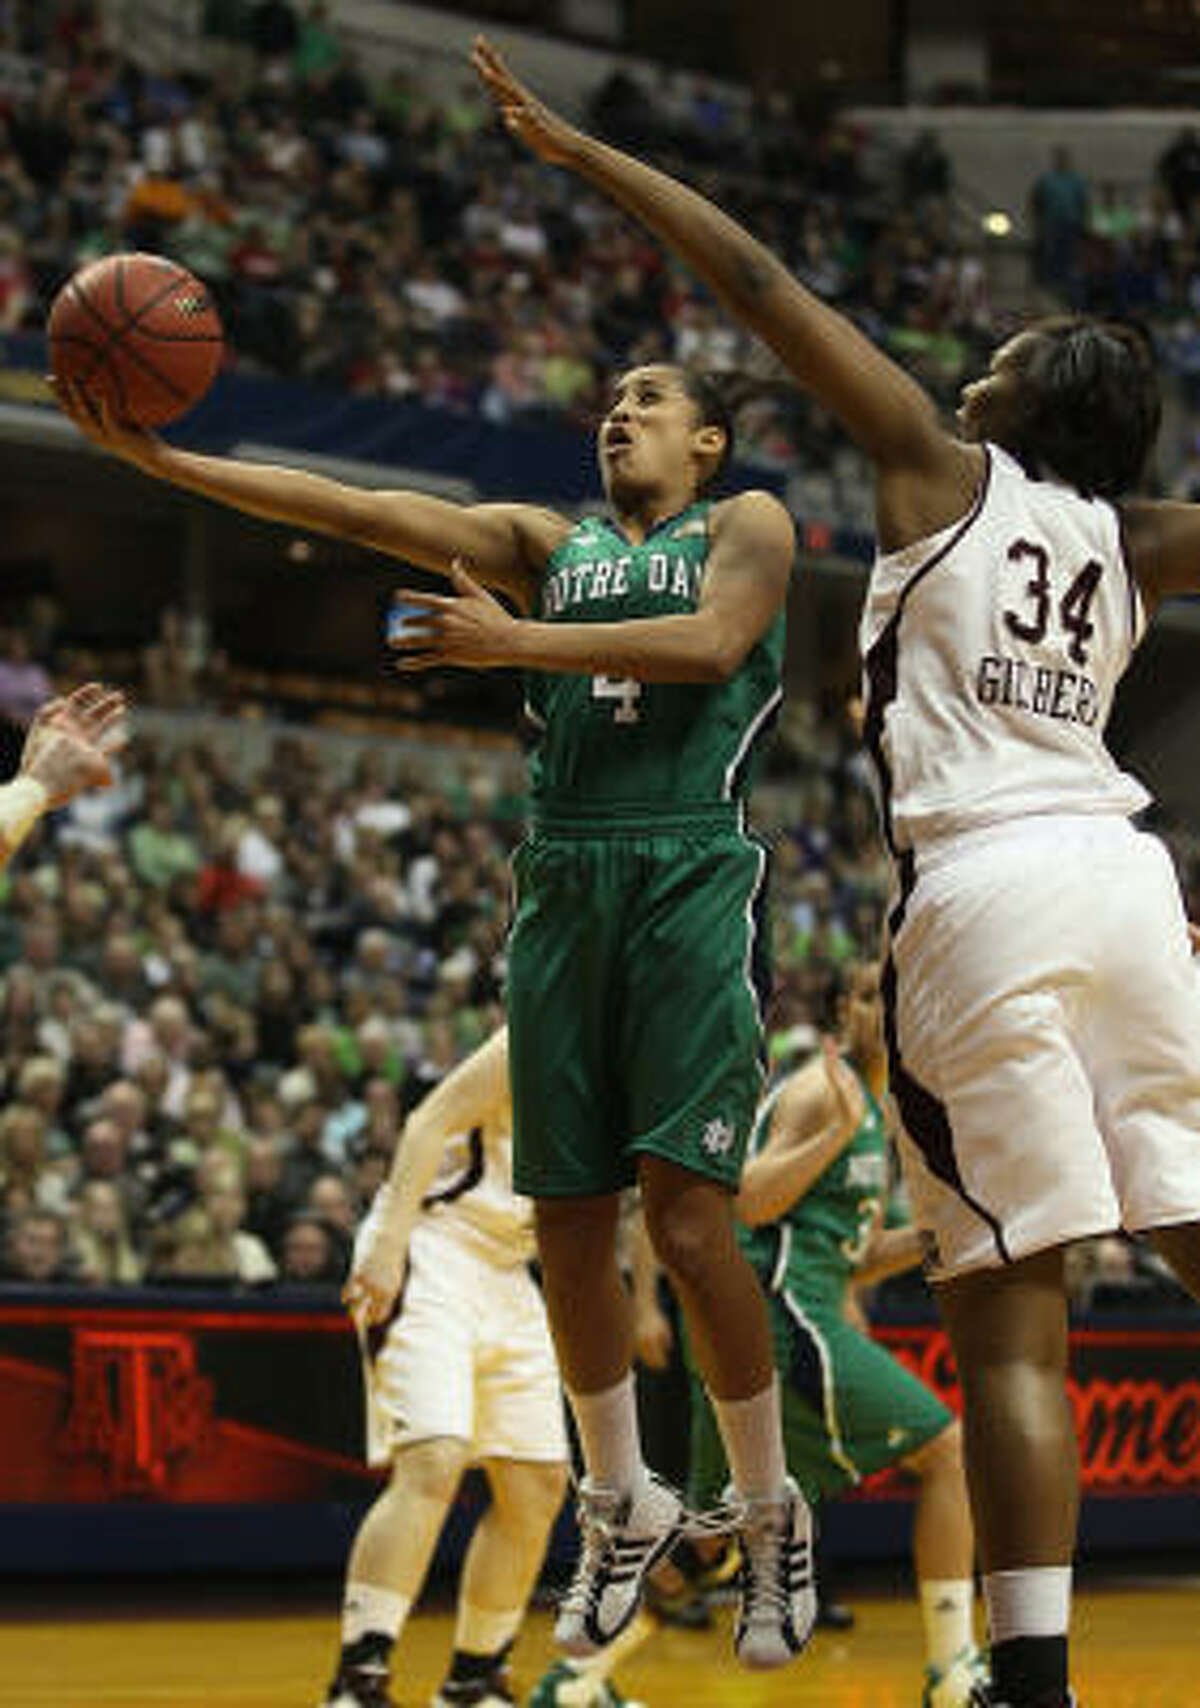 Skylar Diggins of the Notre Dame Fighting Irish takes a shot as Karla Gilbert of the Texas A&M Aggies defends.